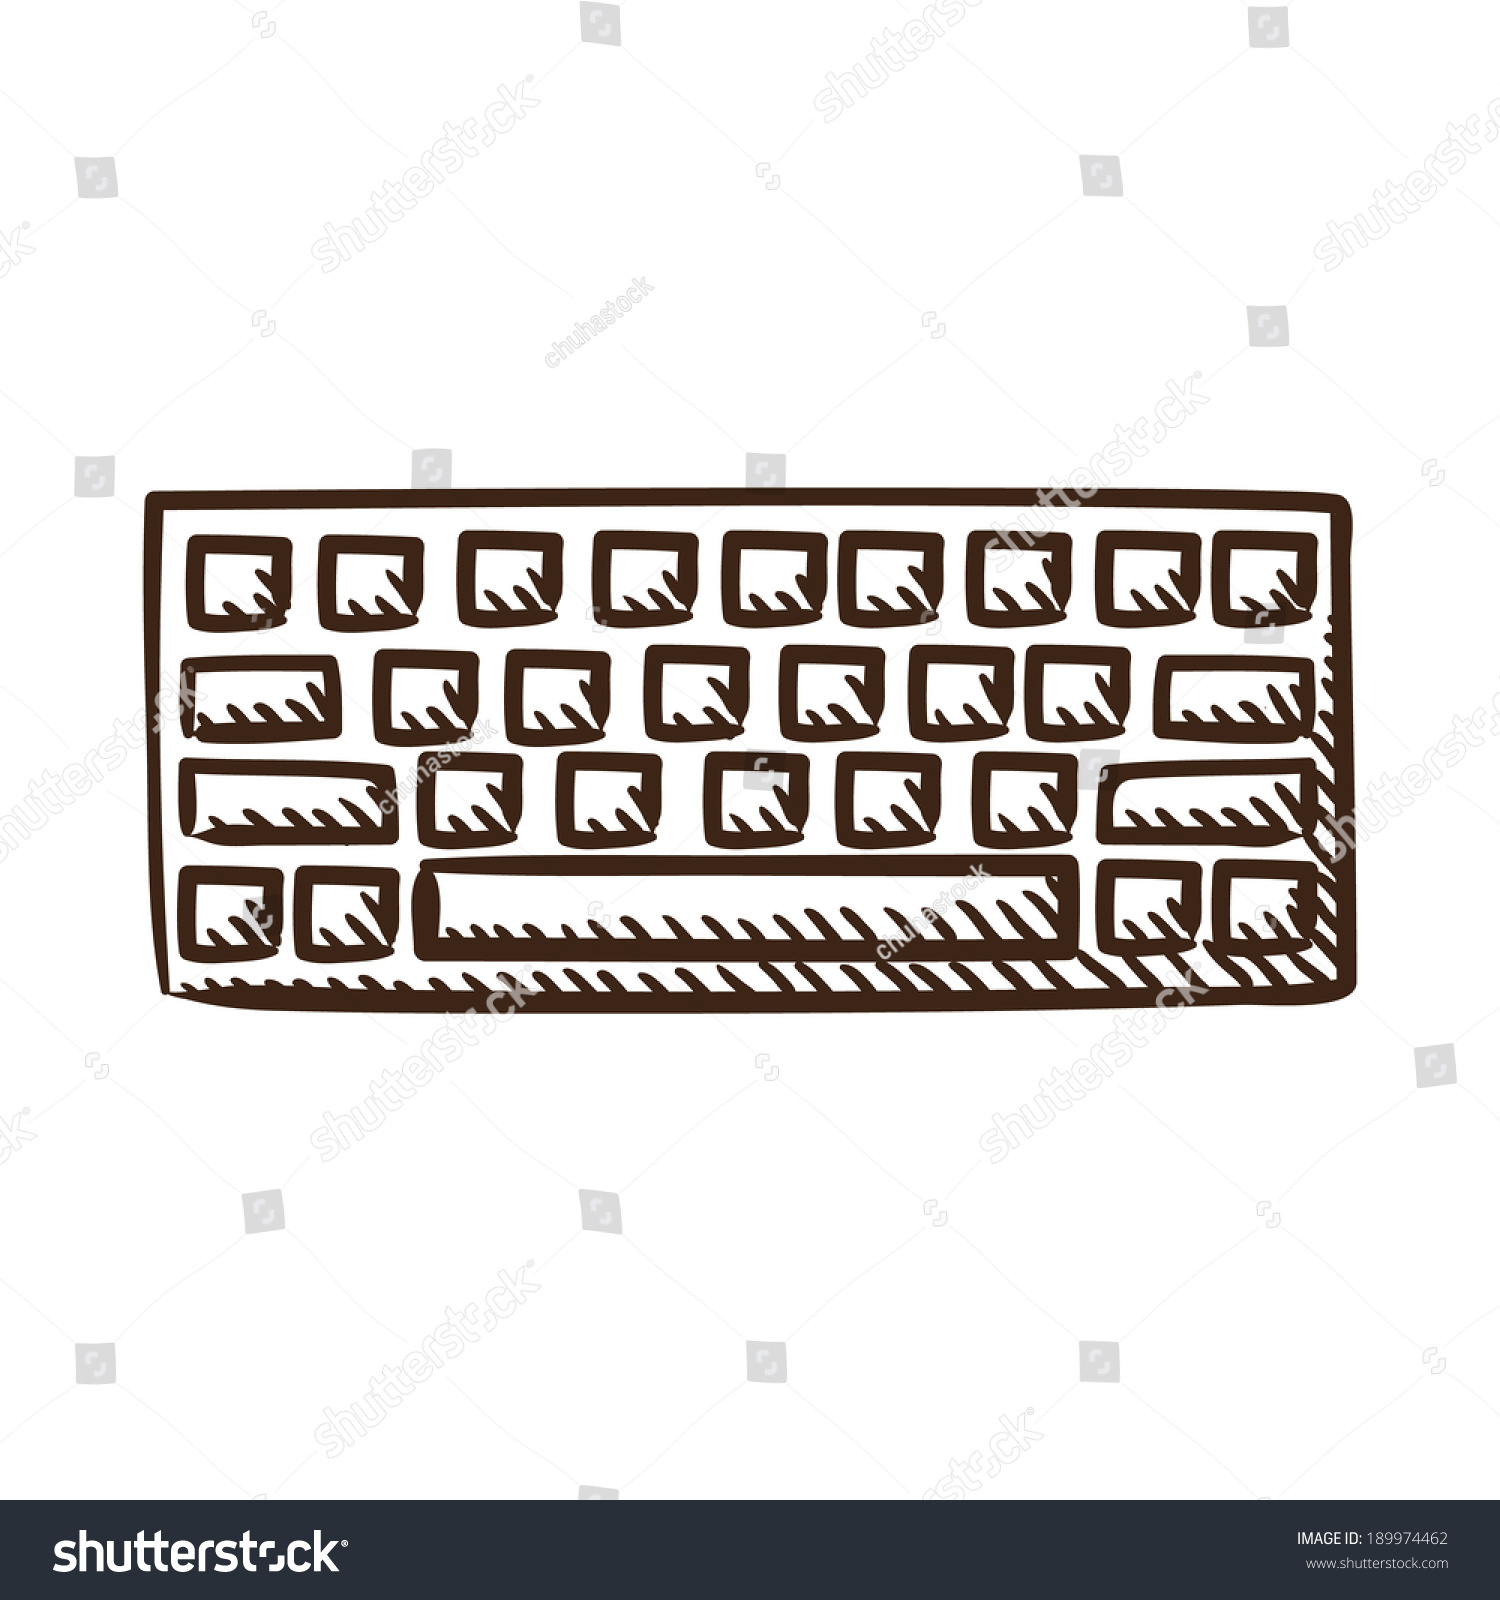 Mexican keyboard symbols gallery symbol and sign ideas computer keyboard symbol isolated sketch icon stock illustration computer keyboard symbol isolated sketch icon pictogram buycottarizona buycottarizona